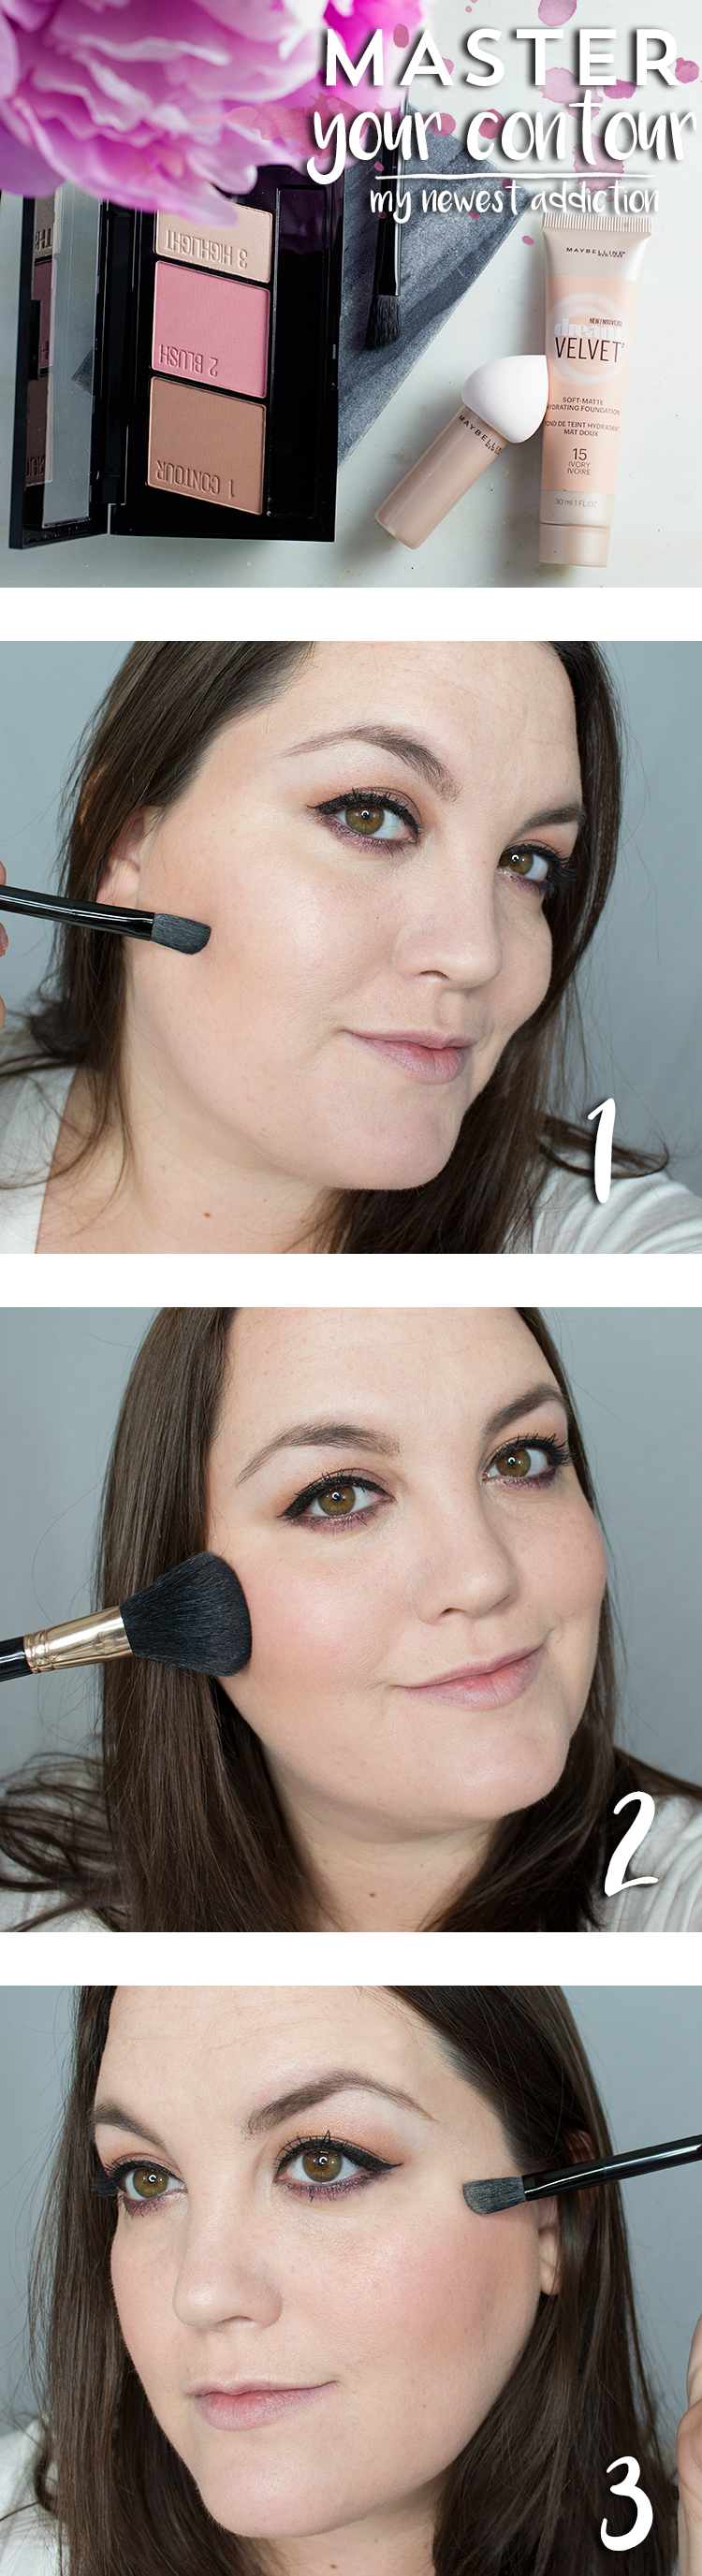 Master your contour in 3 easy steps with Maybelline Master Contour palette.